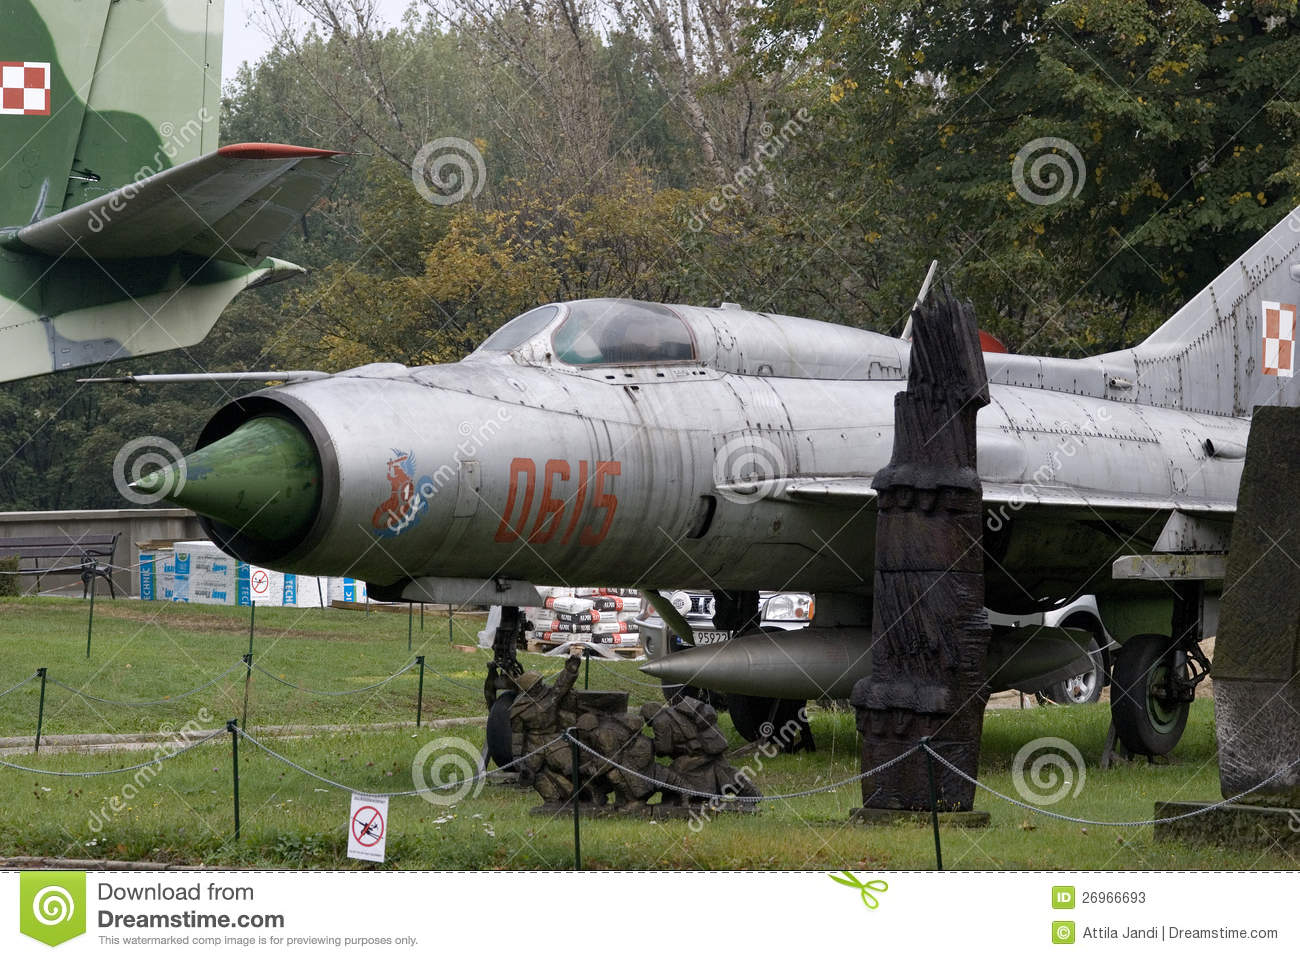 Soviet MiG fighter http://www.dreamstime.com/stock-photos-mig-21-soviet-fighter-warszawa-poland-image26966693